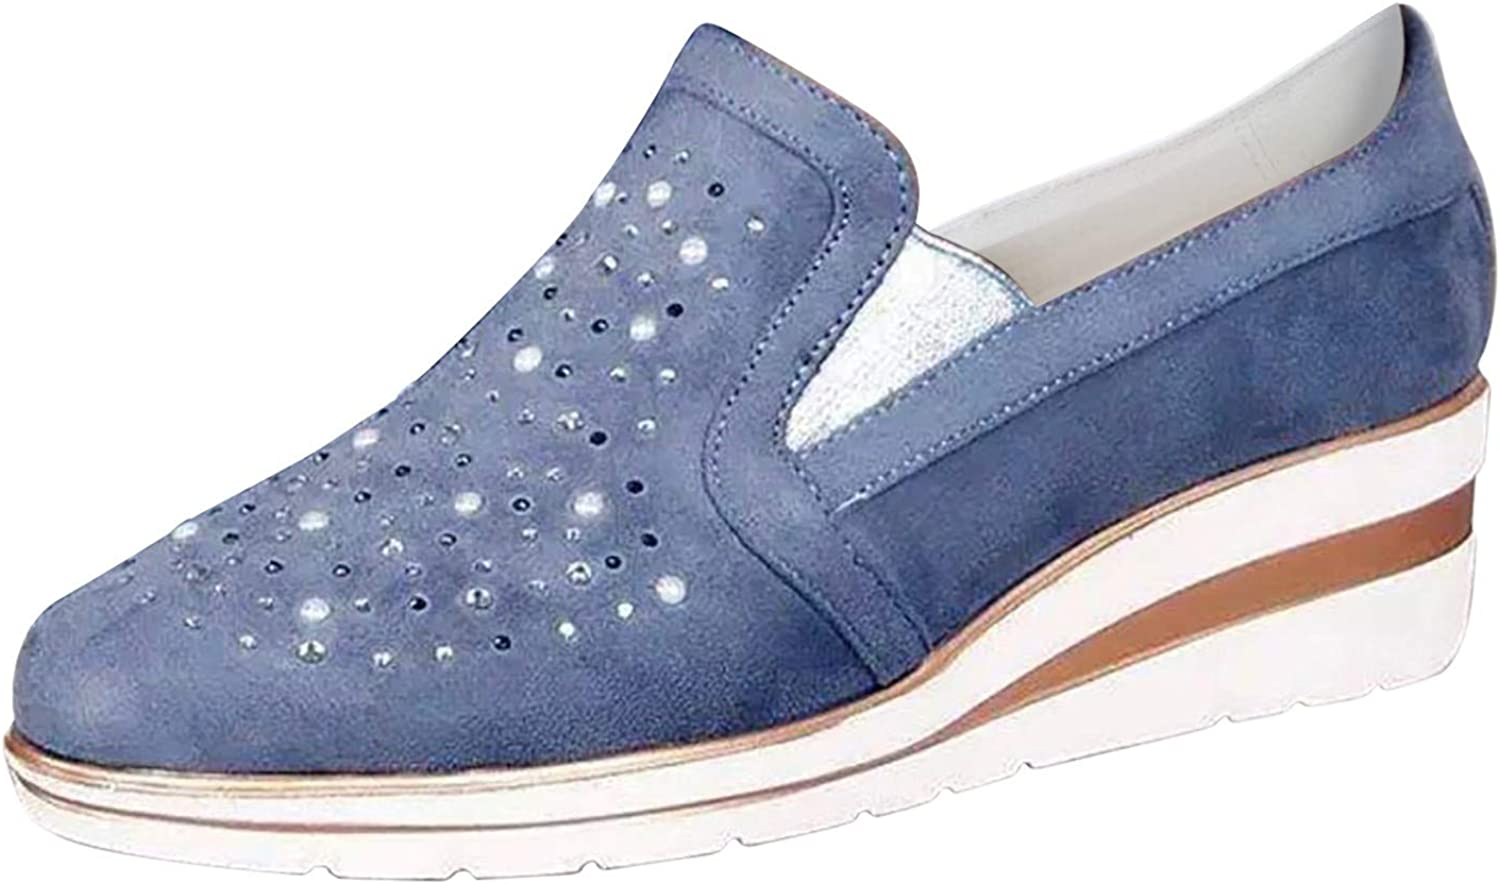 SCIHTE Women's Slip on Loafers Round Bombing free shipping Platform Wedge Shoes Toe Ca Las Vegas Mall